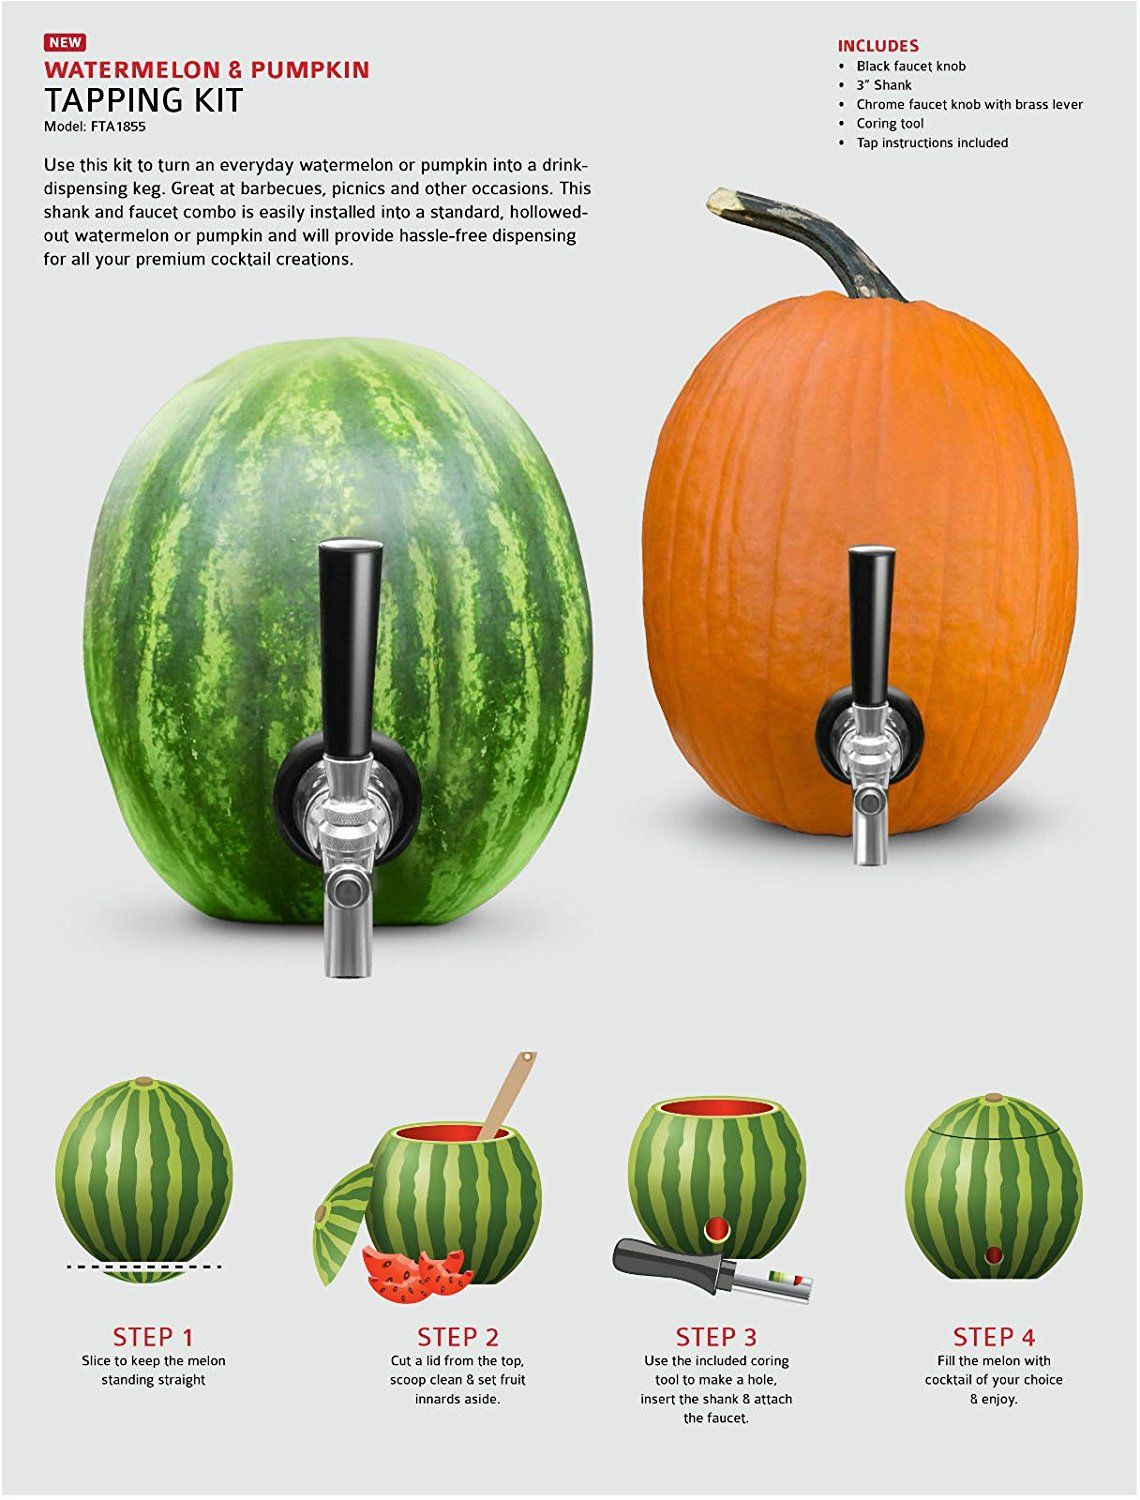 How to make a watermelon/pumpkin punch keg. Find tapping kit here ...